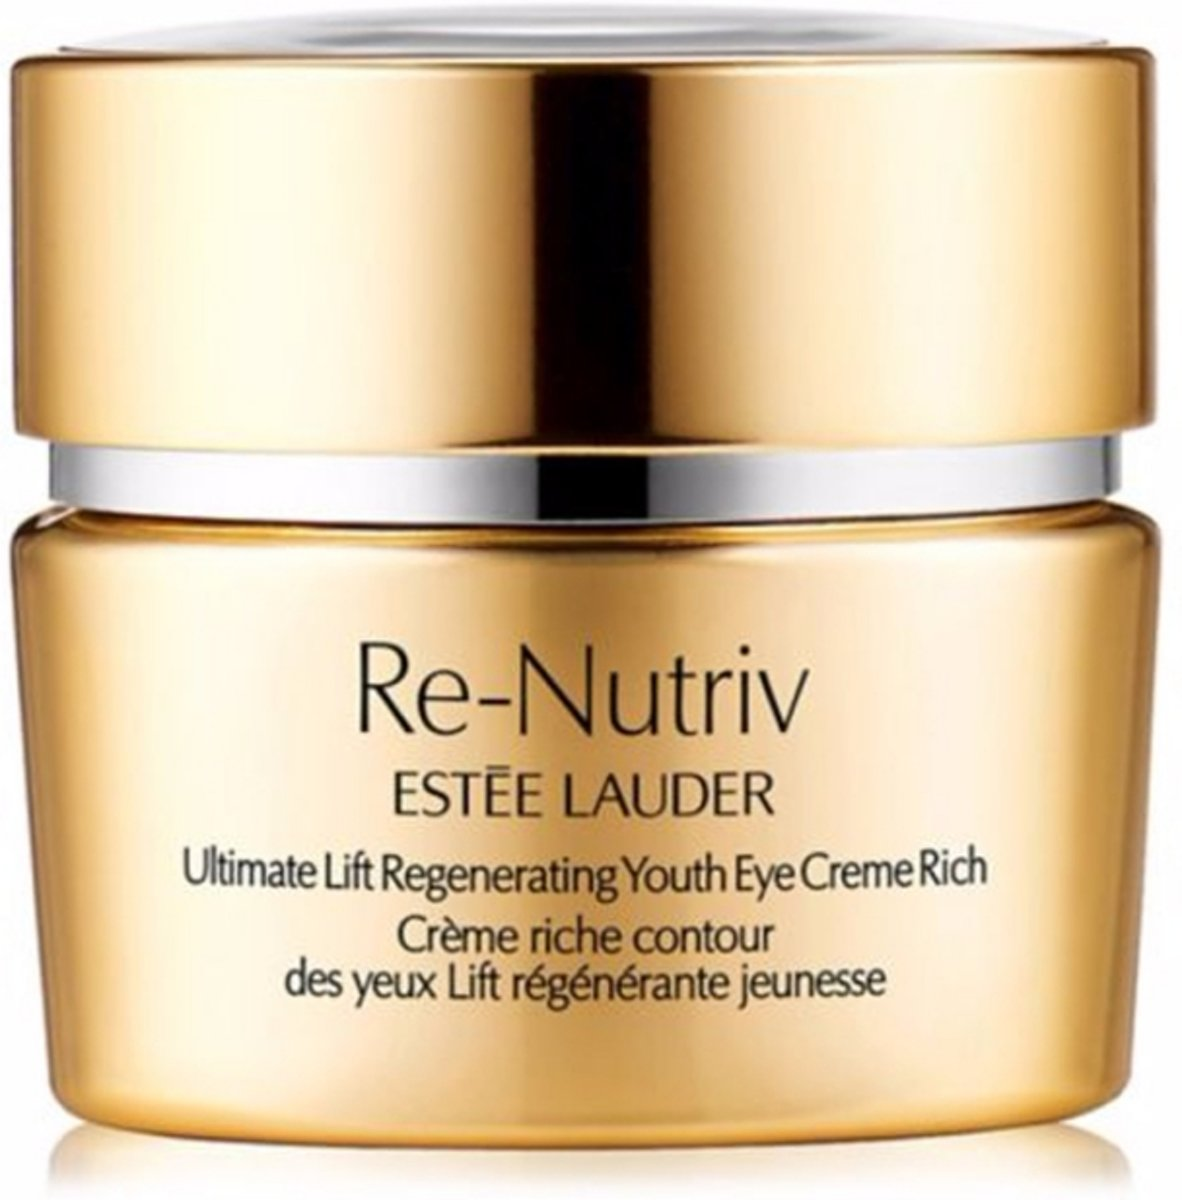 Estée Lauder Re-Nutriv Ultimate Lift Regenerating Youth Eye Creme Rich Oogcrème 15 ml